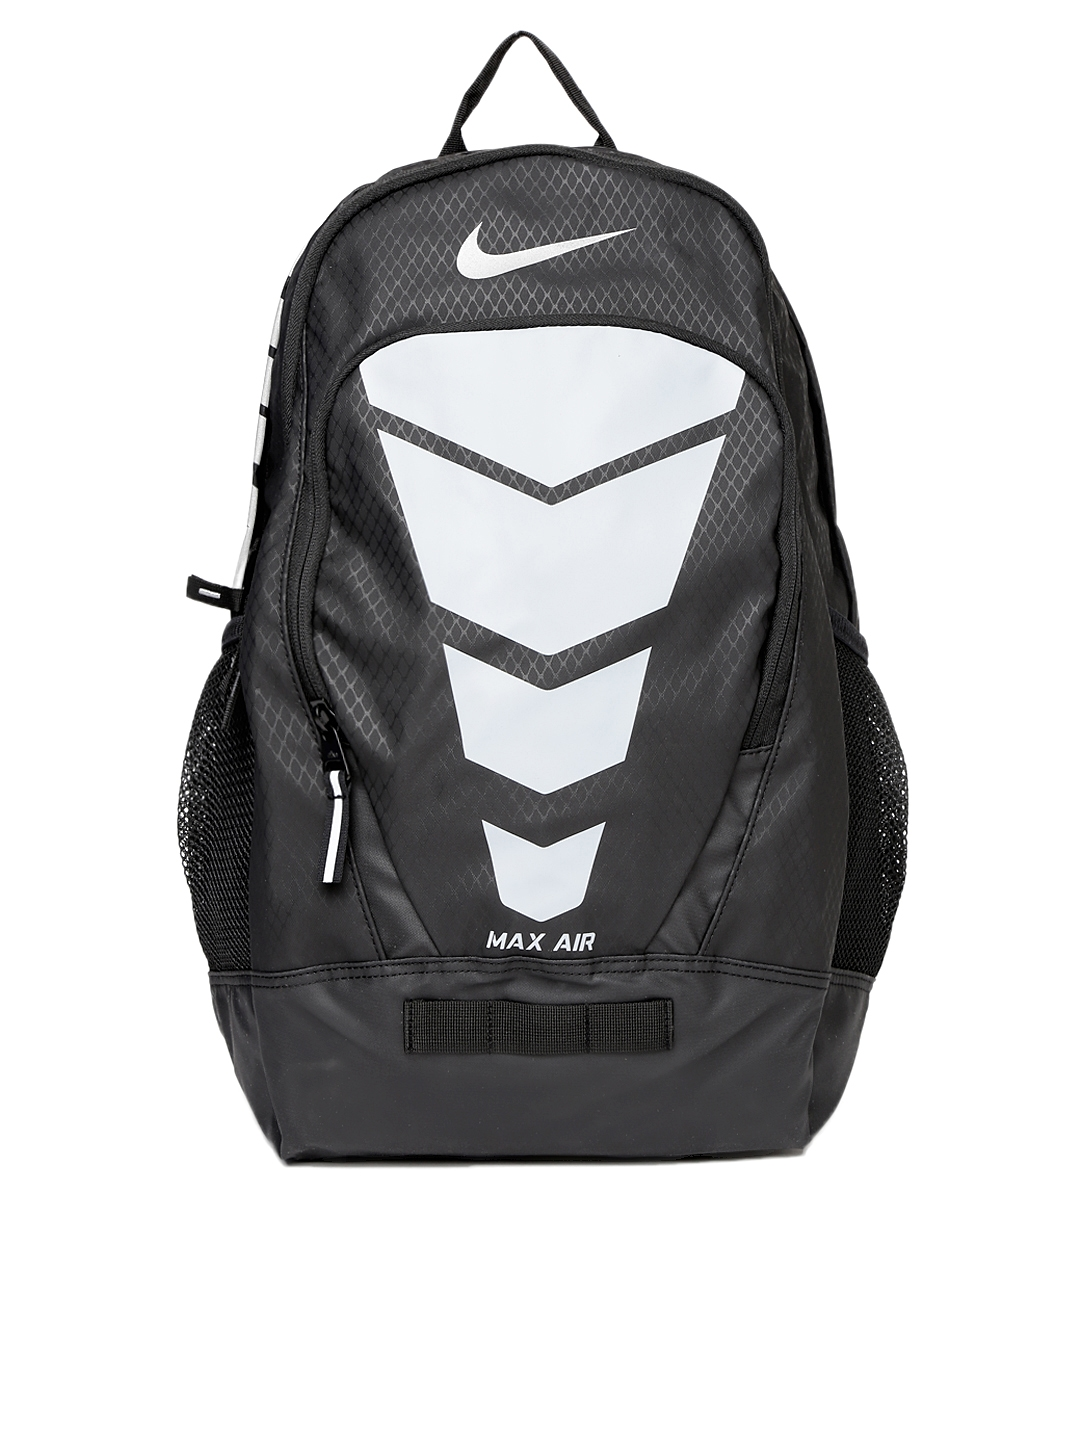 dbba732fac3 nike air max bag Sale